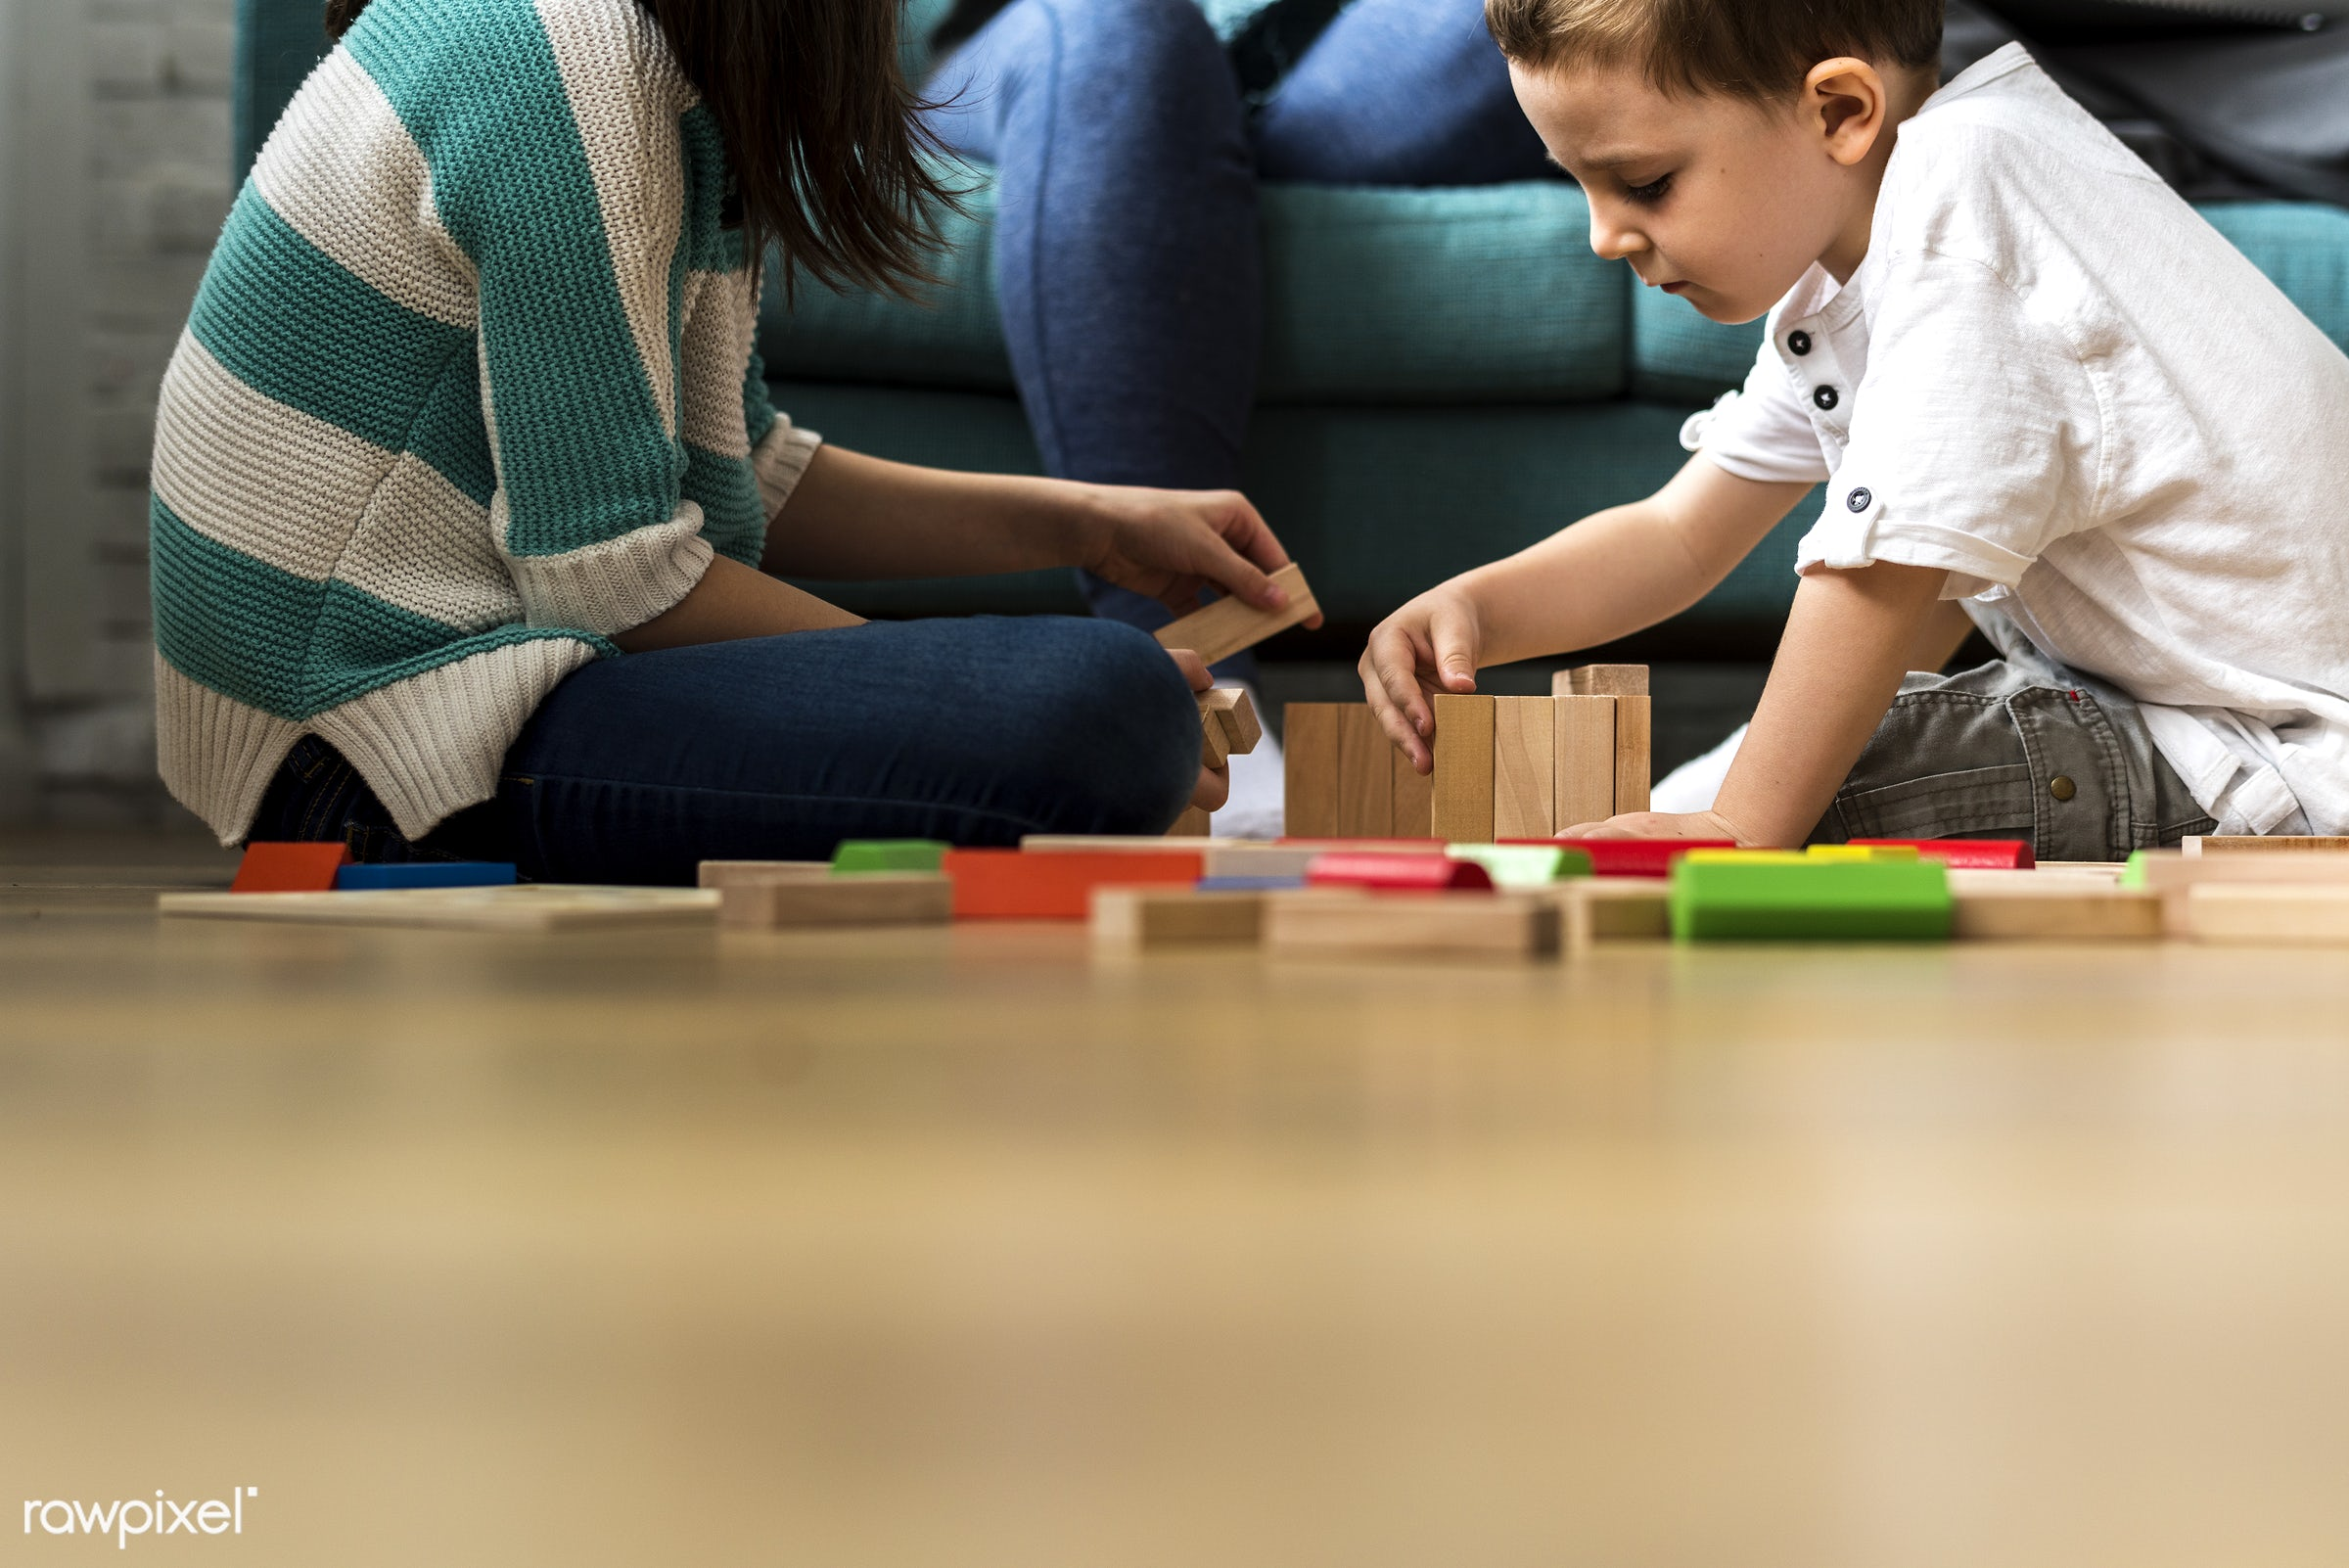 person, wood, toy blocks, little, entertain, wooden blocks, people, together, positivity, kid, love, family, lifestyle,...